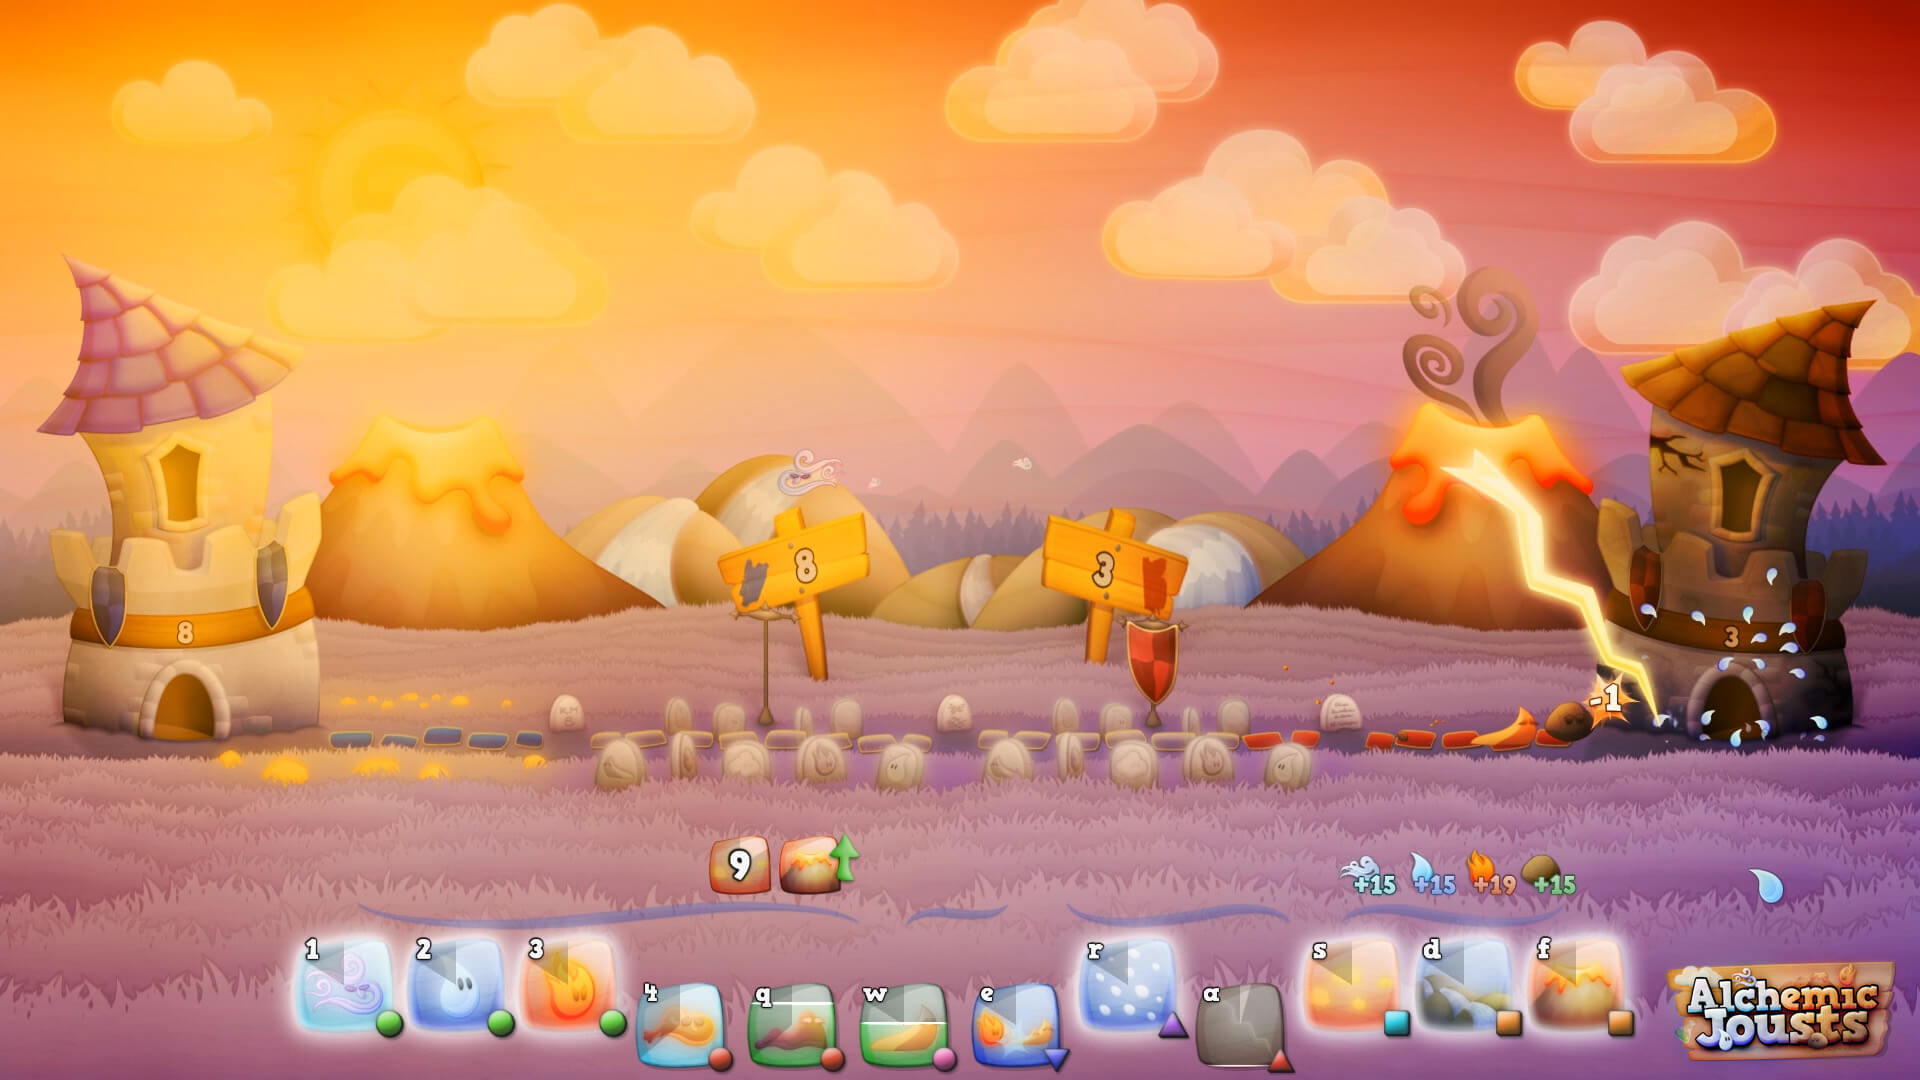 Alchemic Jousts Masthead